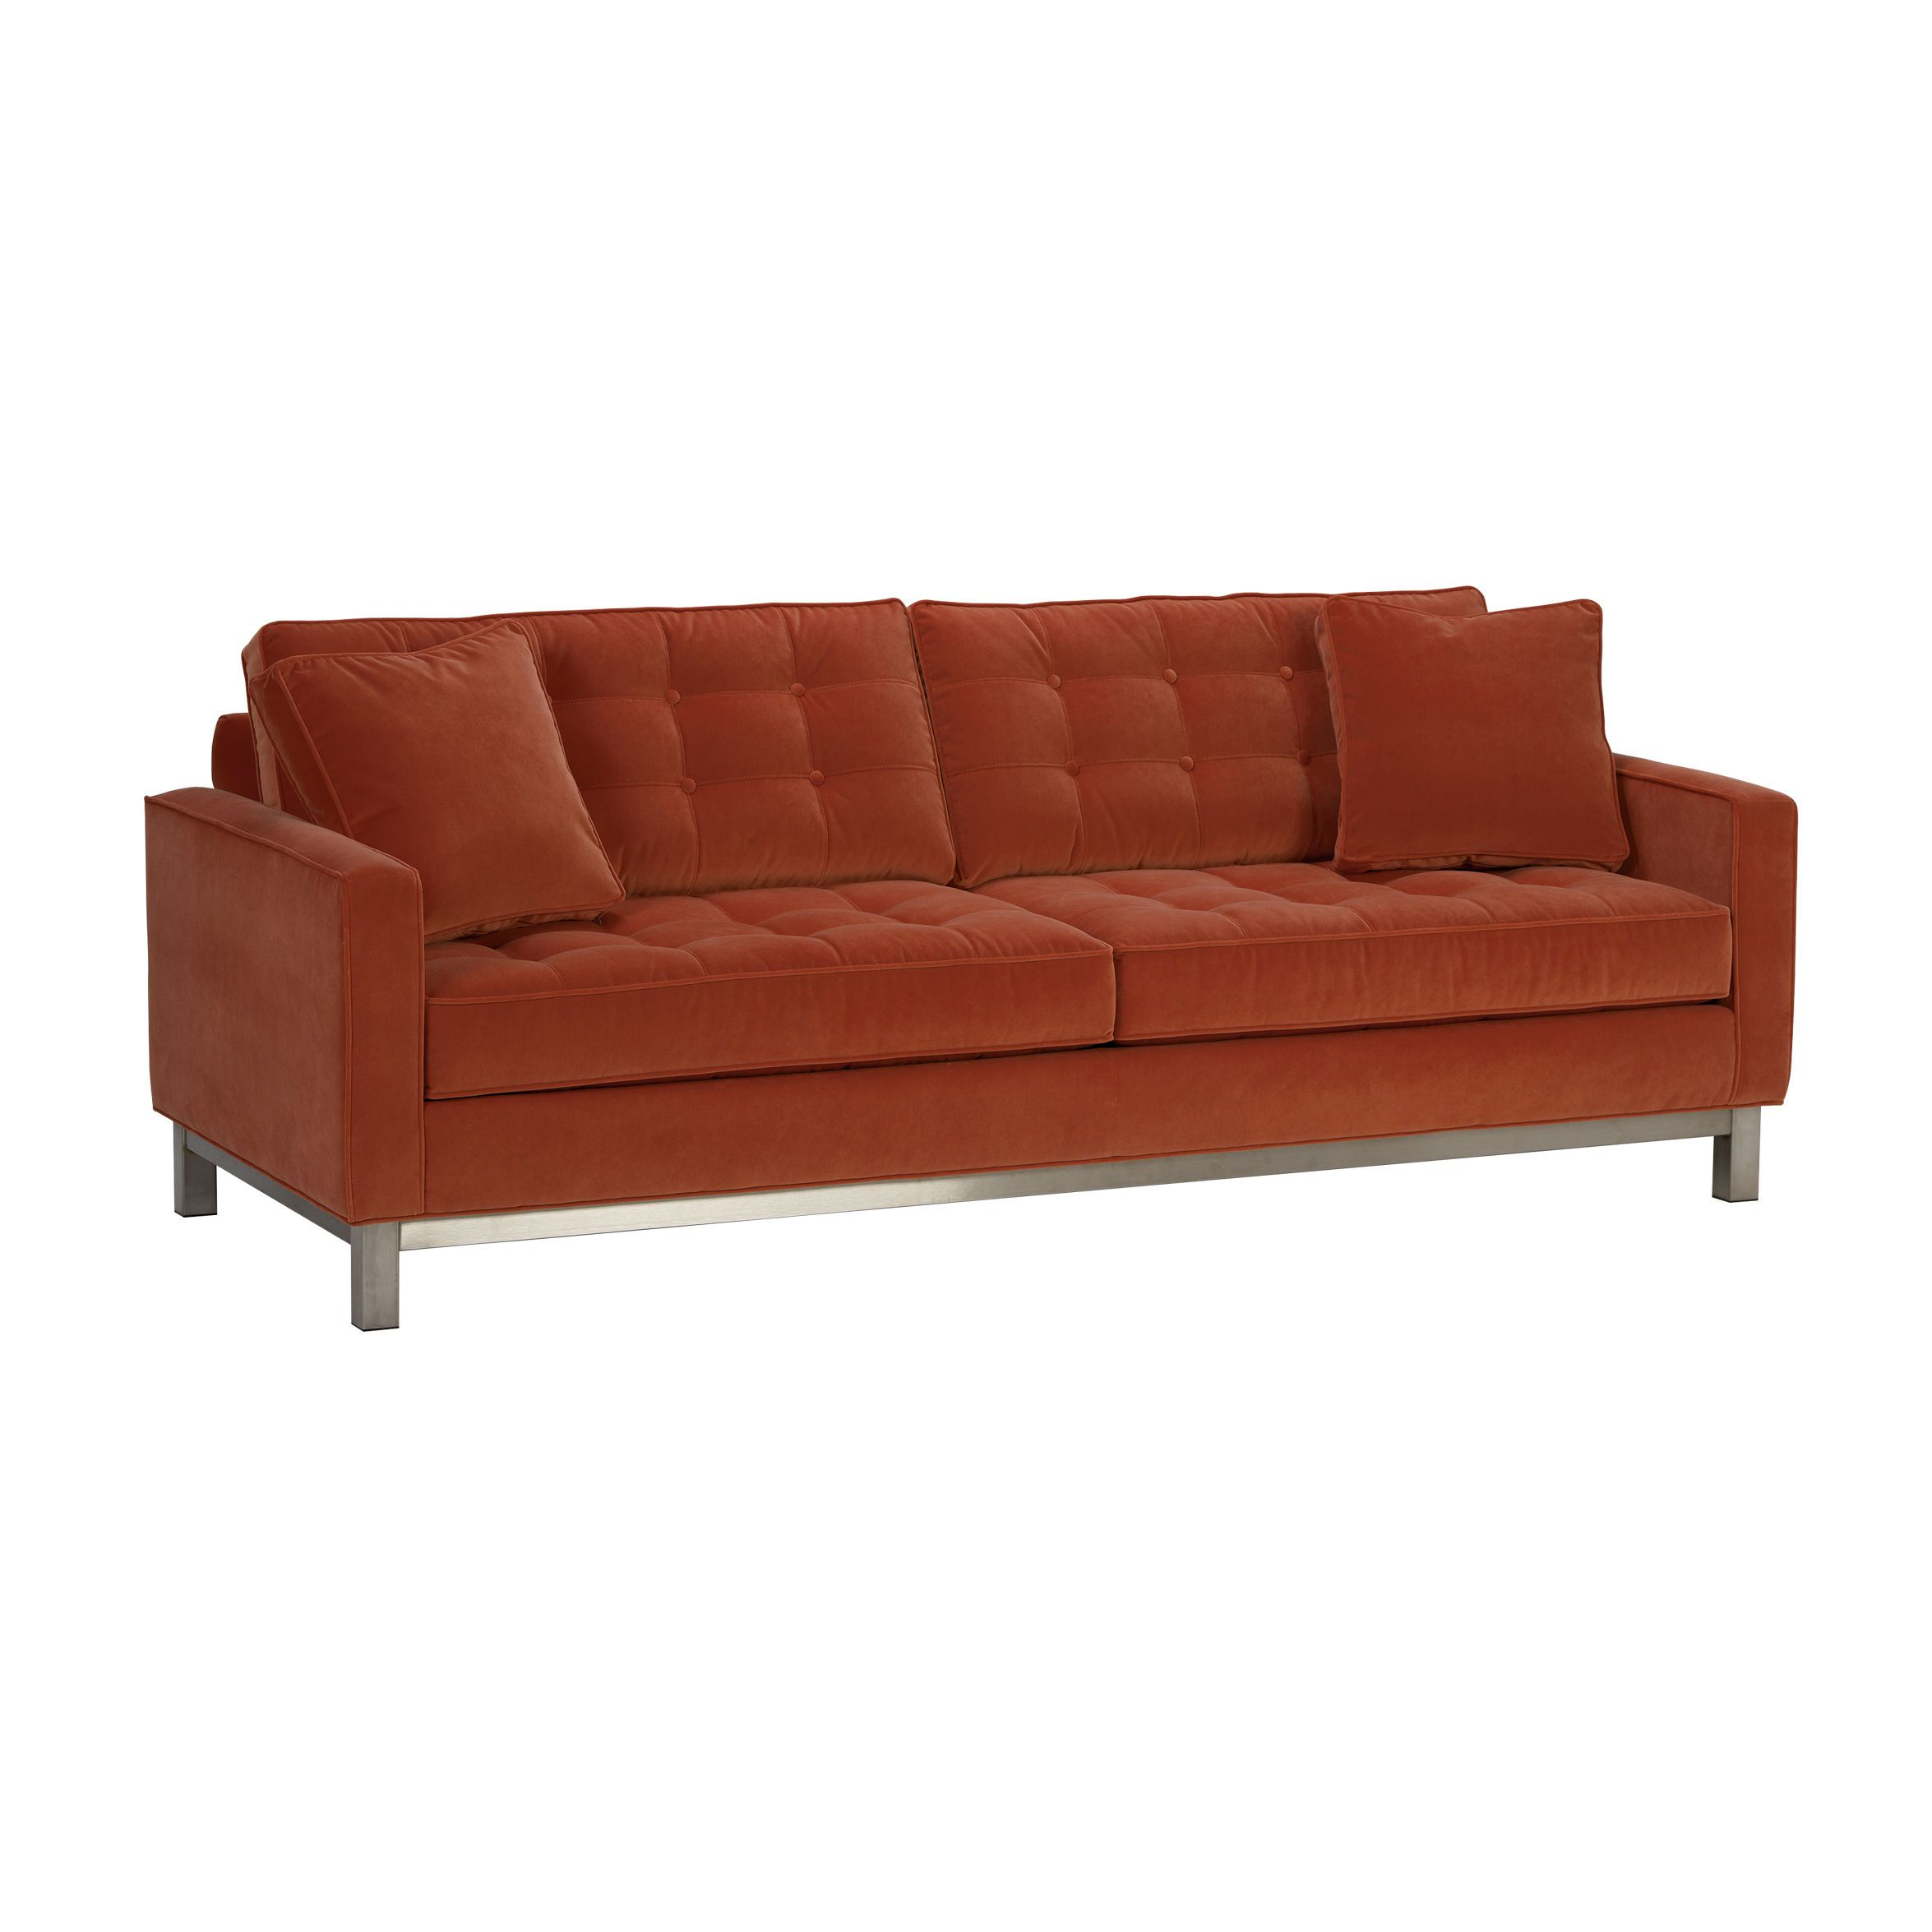 Awe Inspiring Ethan Allens Newest Sofa The Melrose Ethan Allen Gmtry Best Dining Table And Chair Ideas Images Gmtryco